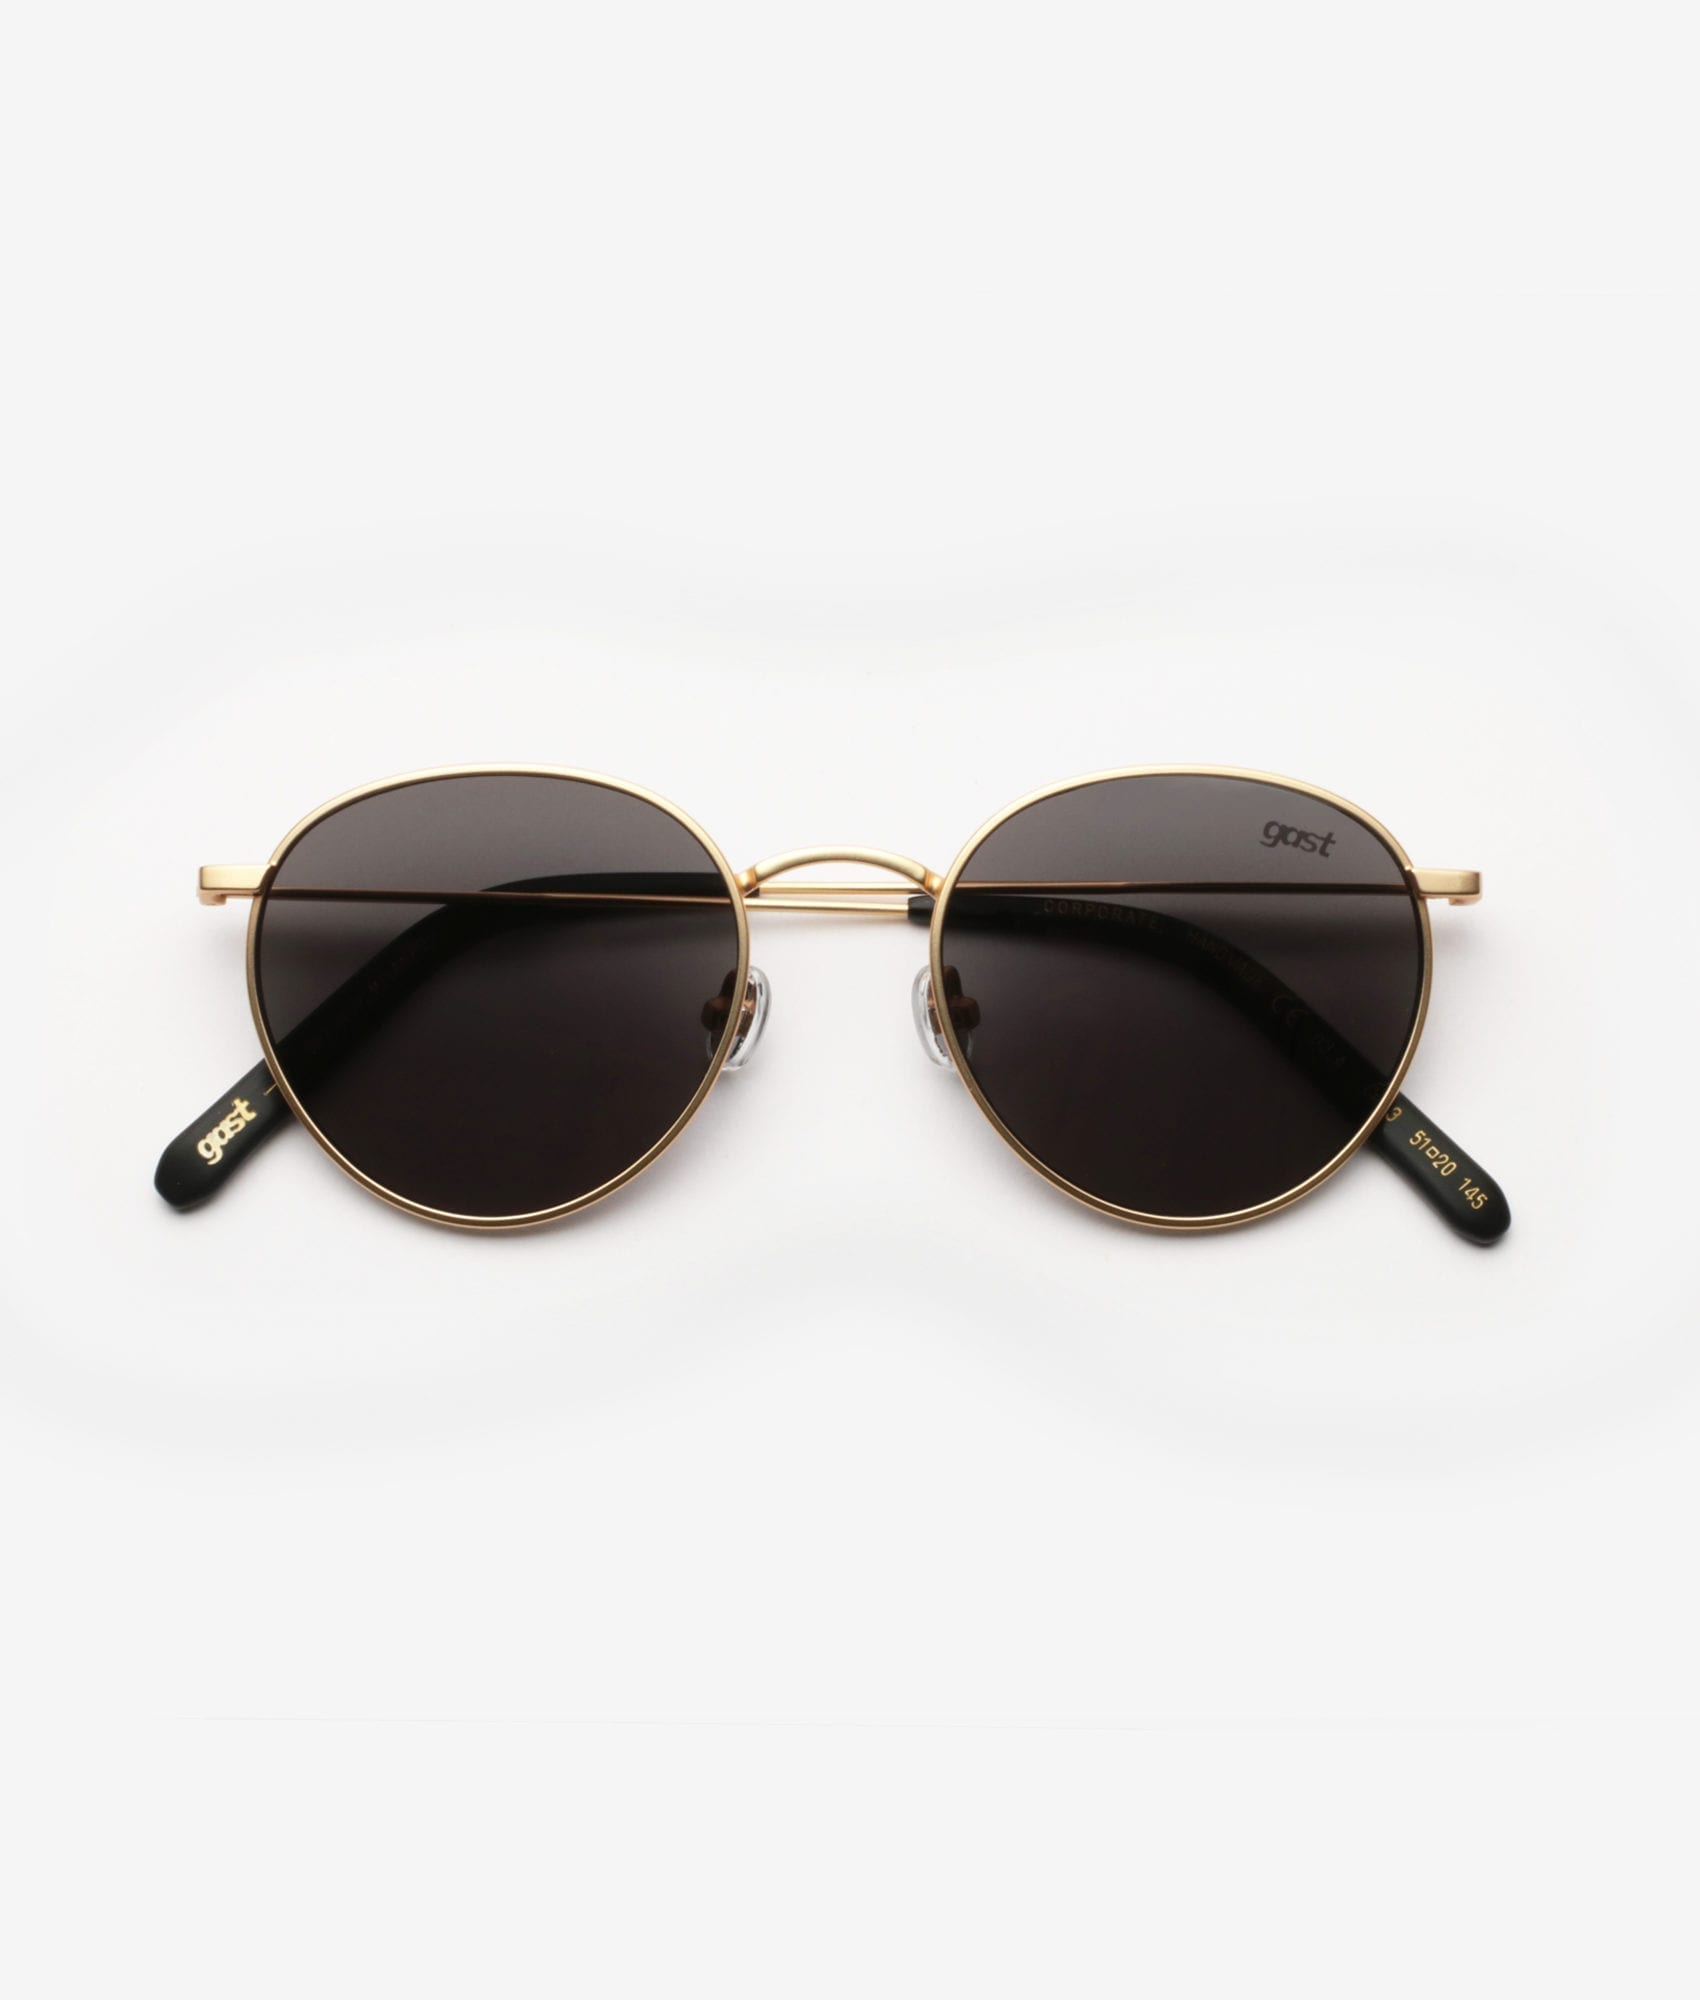 CORPORATE Matte Gold Gast Sunglasses